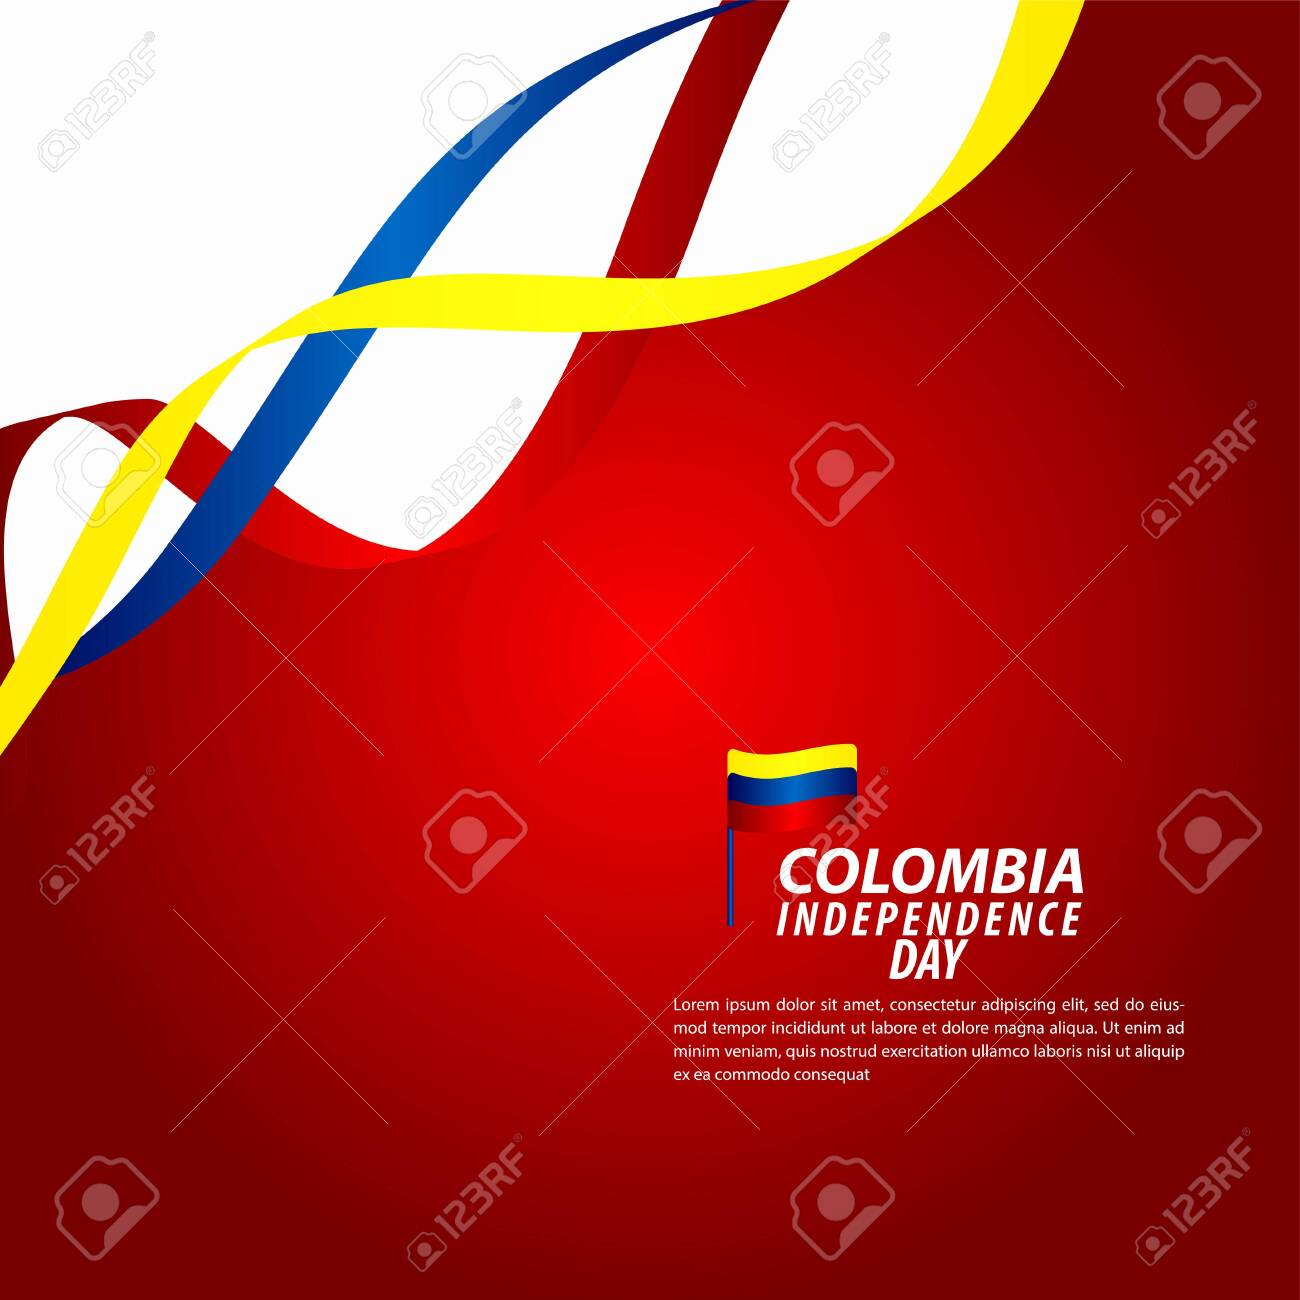 Colombia Independence Day Celebration Vector Template Design Illustration - 136723883